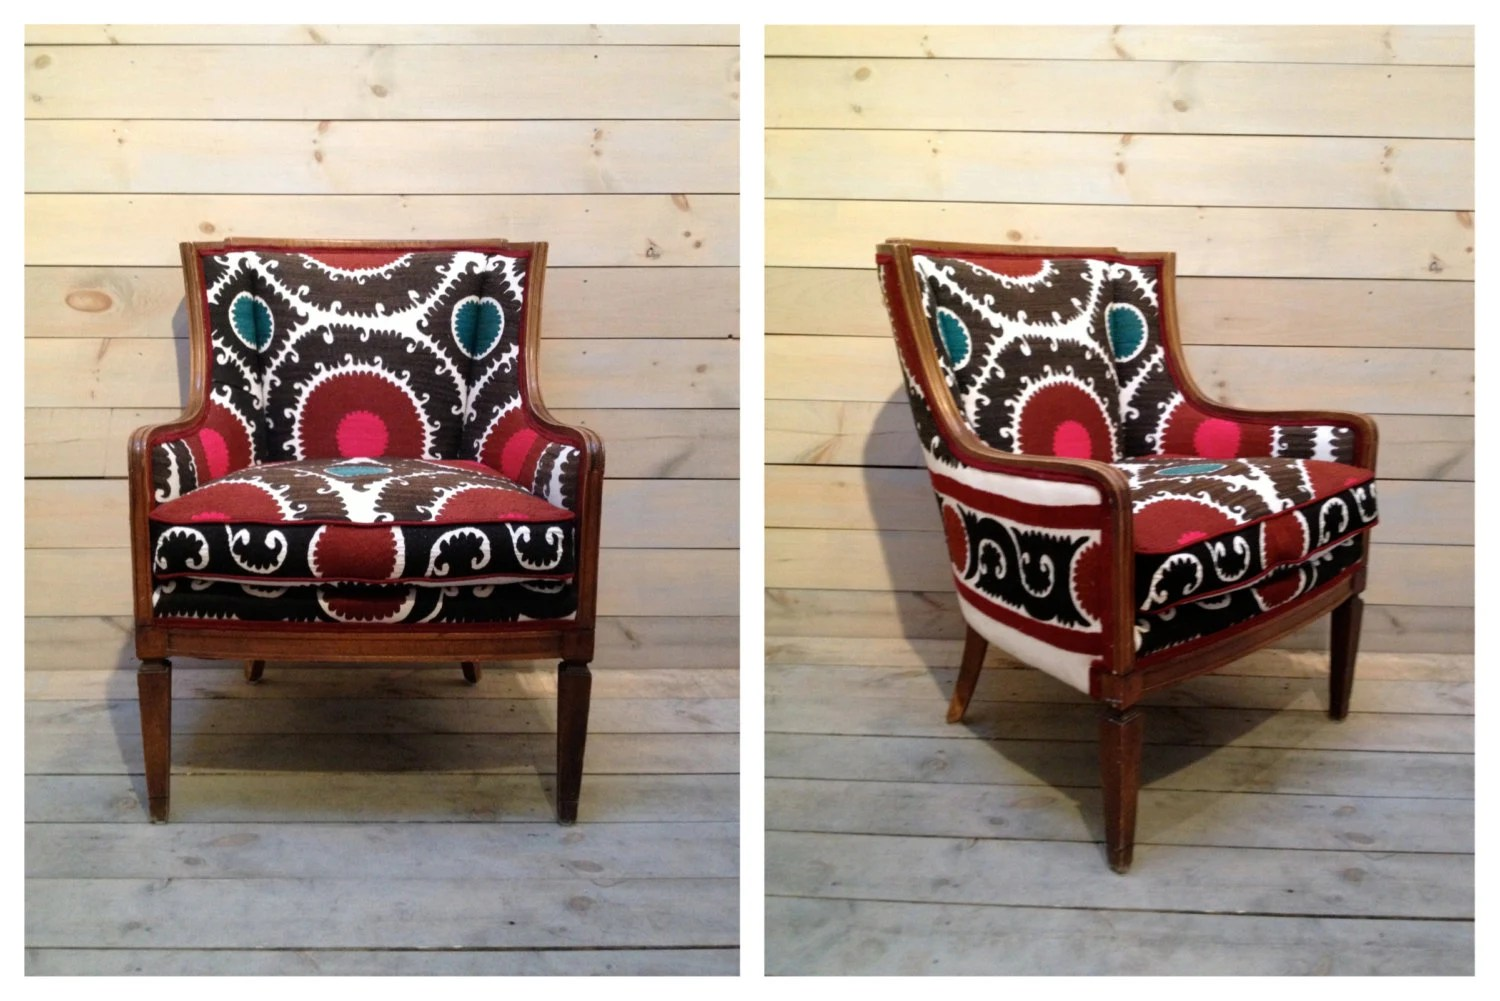 Vintage Suzani-upholstered comfy club chair